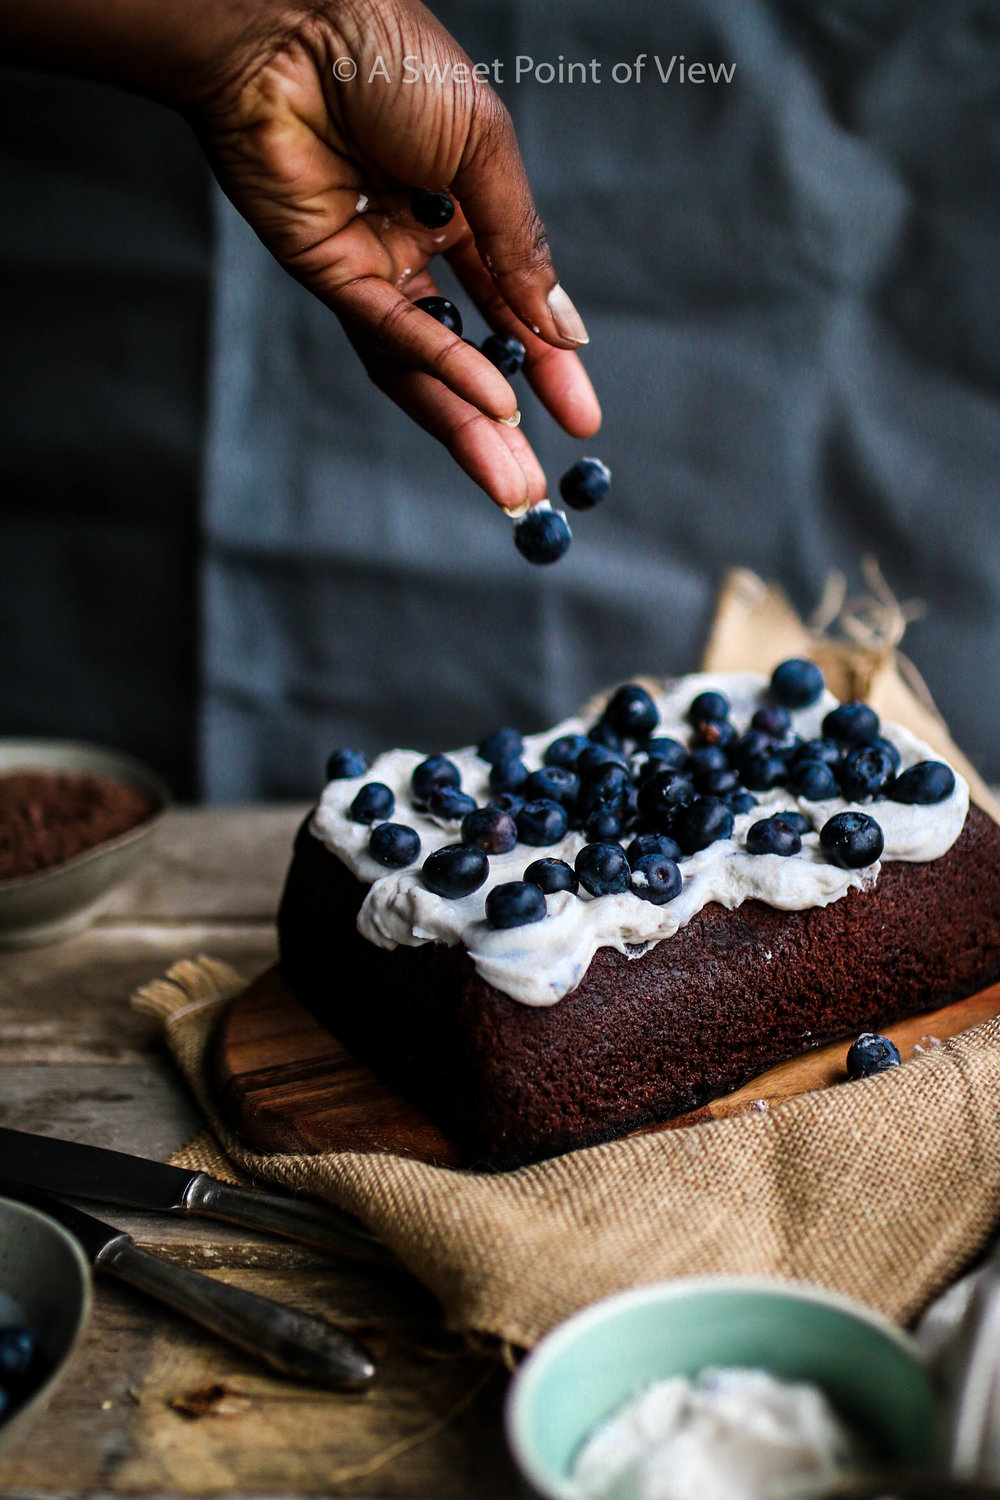 Blueberry-Cake-Billa-Recipe-11-of-1.jpg